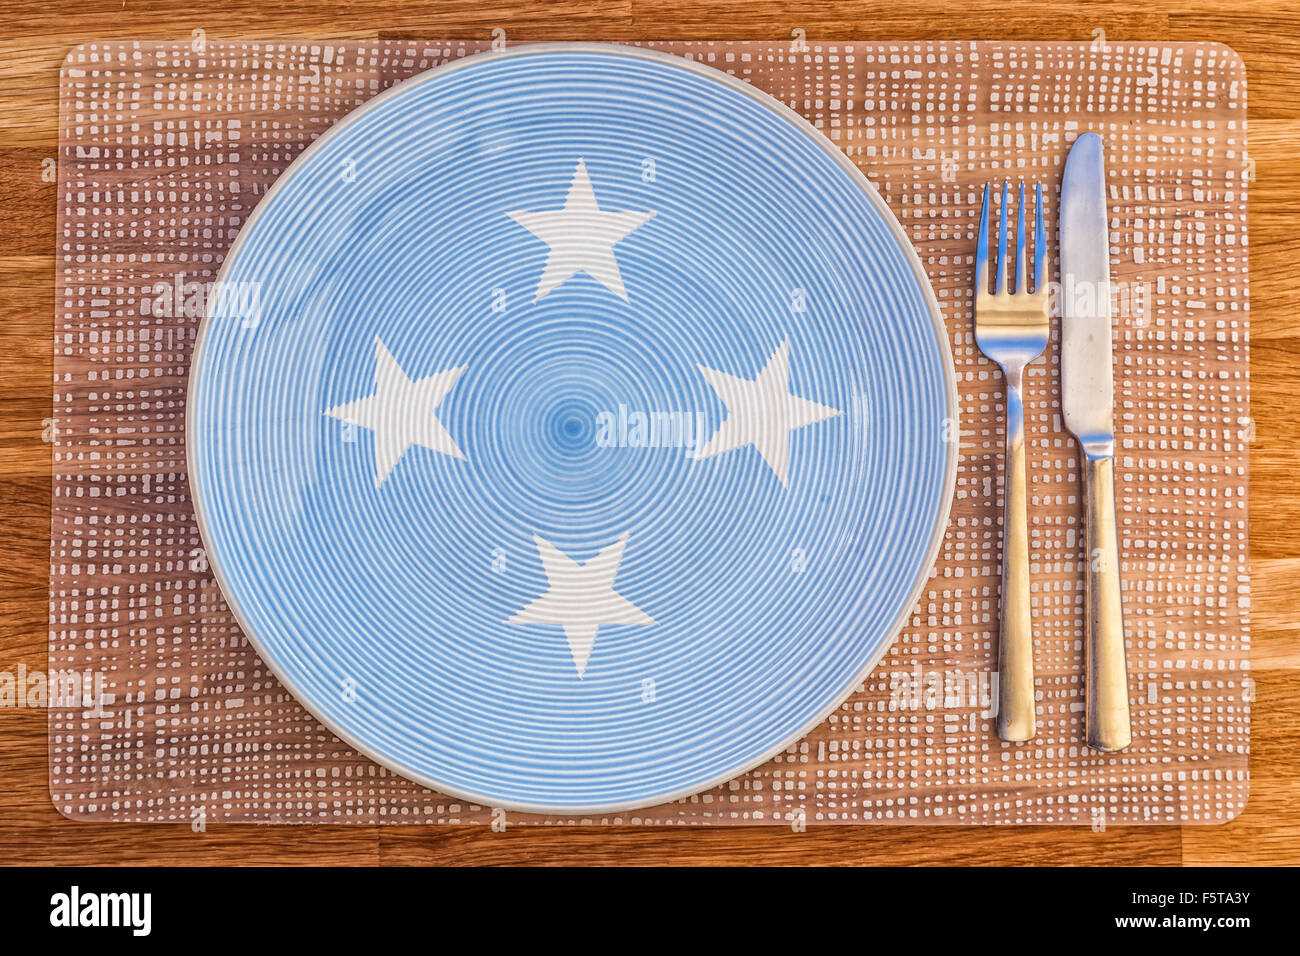 Dinner plate with the flag of Micronesia on it for your international food and drink concepts. - Stock Image